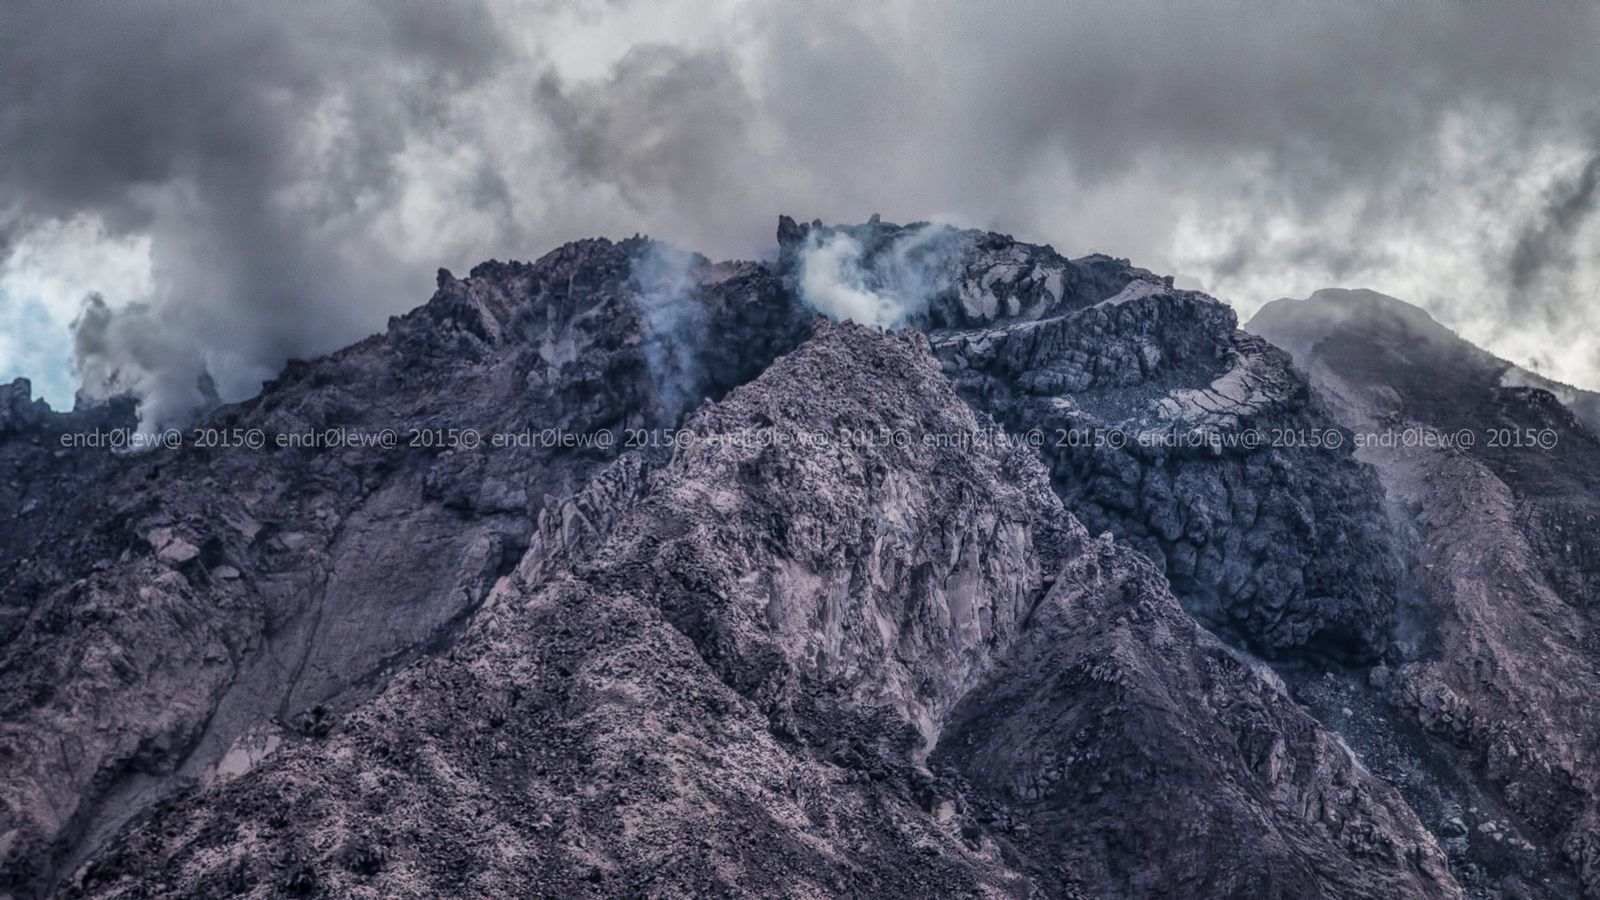 Sinabung - both lobes of the volcano, the left is cut off from its central part - 12.07.2015 / 3:11 p.m. - photo endrolew@